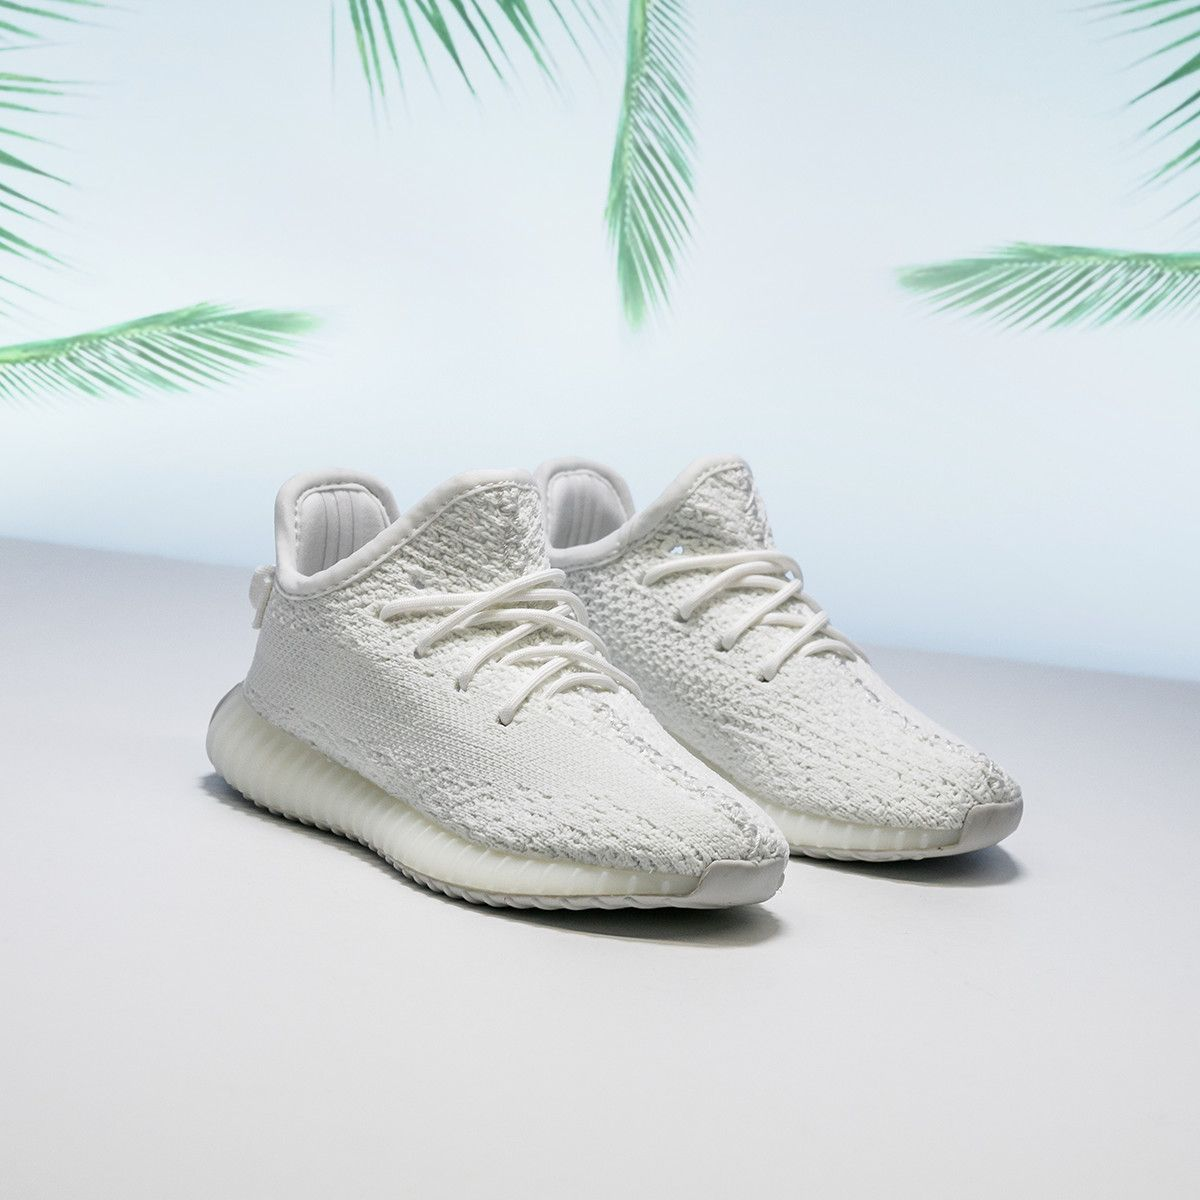 grey yeezy adidas shoes nike outlet store locations near me